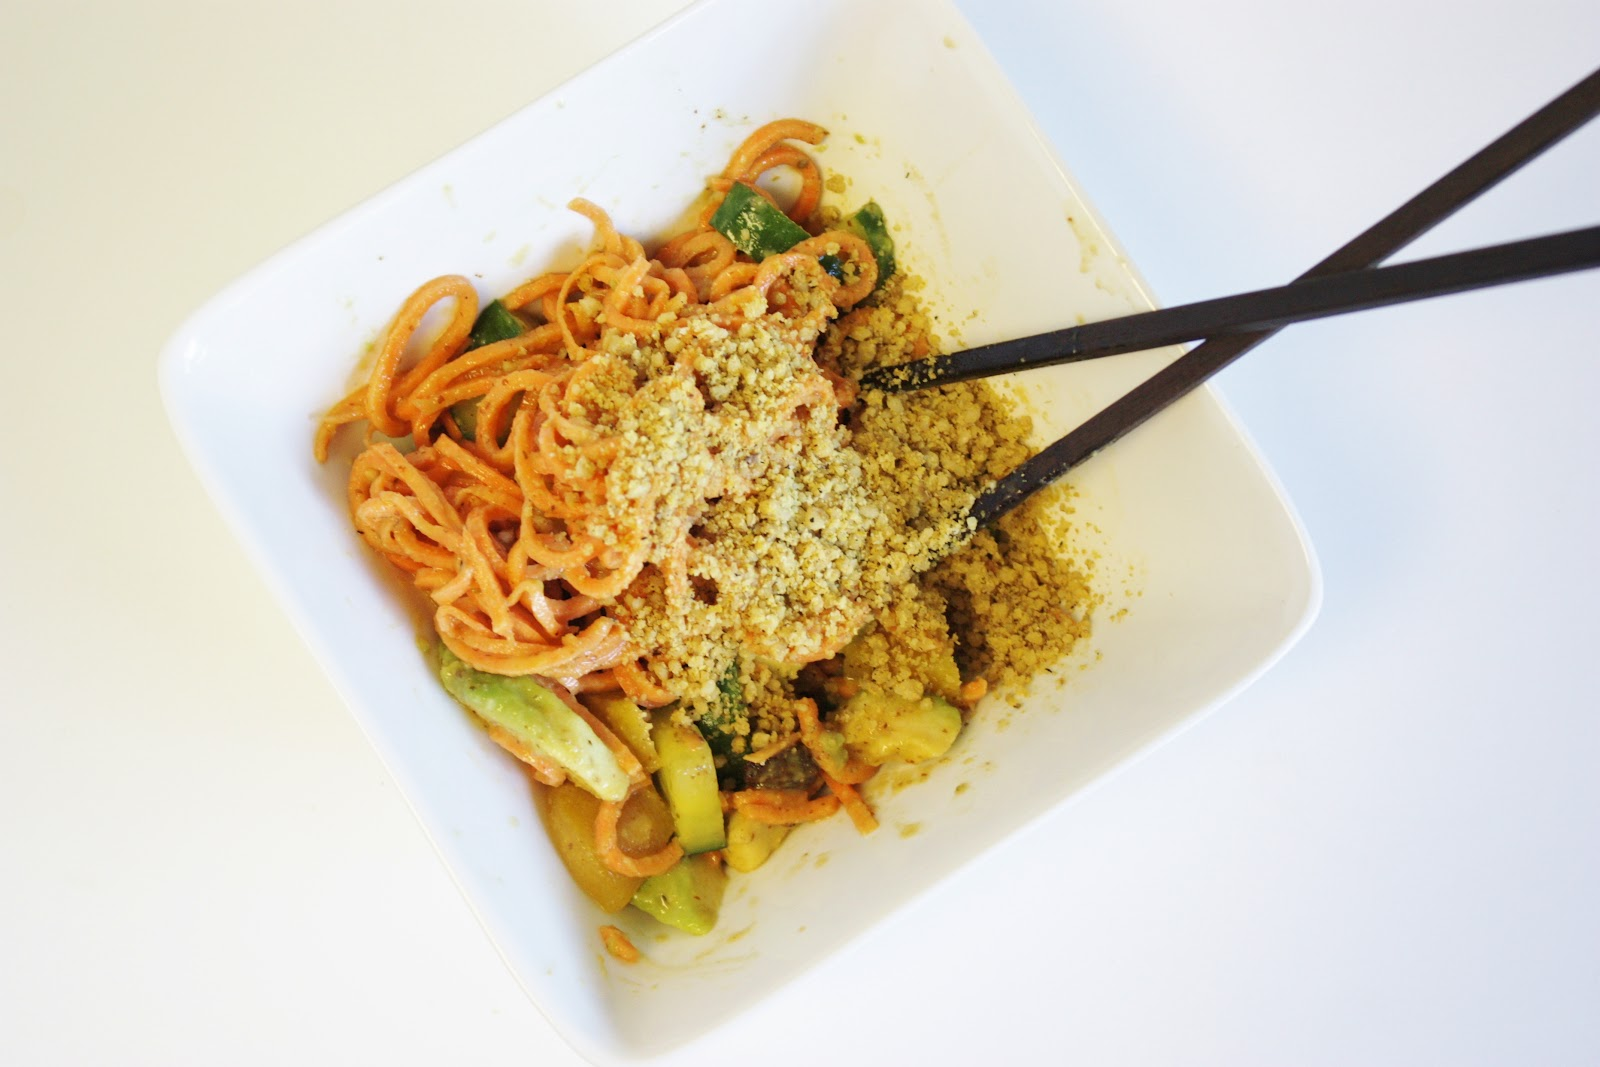 Trying to Loose Weight? Make These 10 Healthy Plant-based Dishes